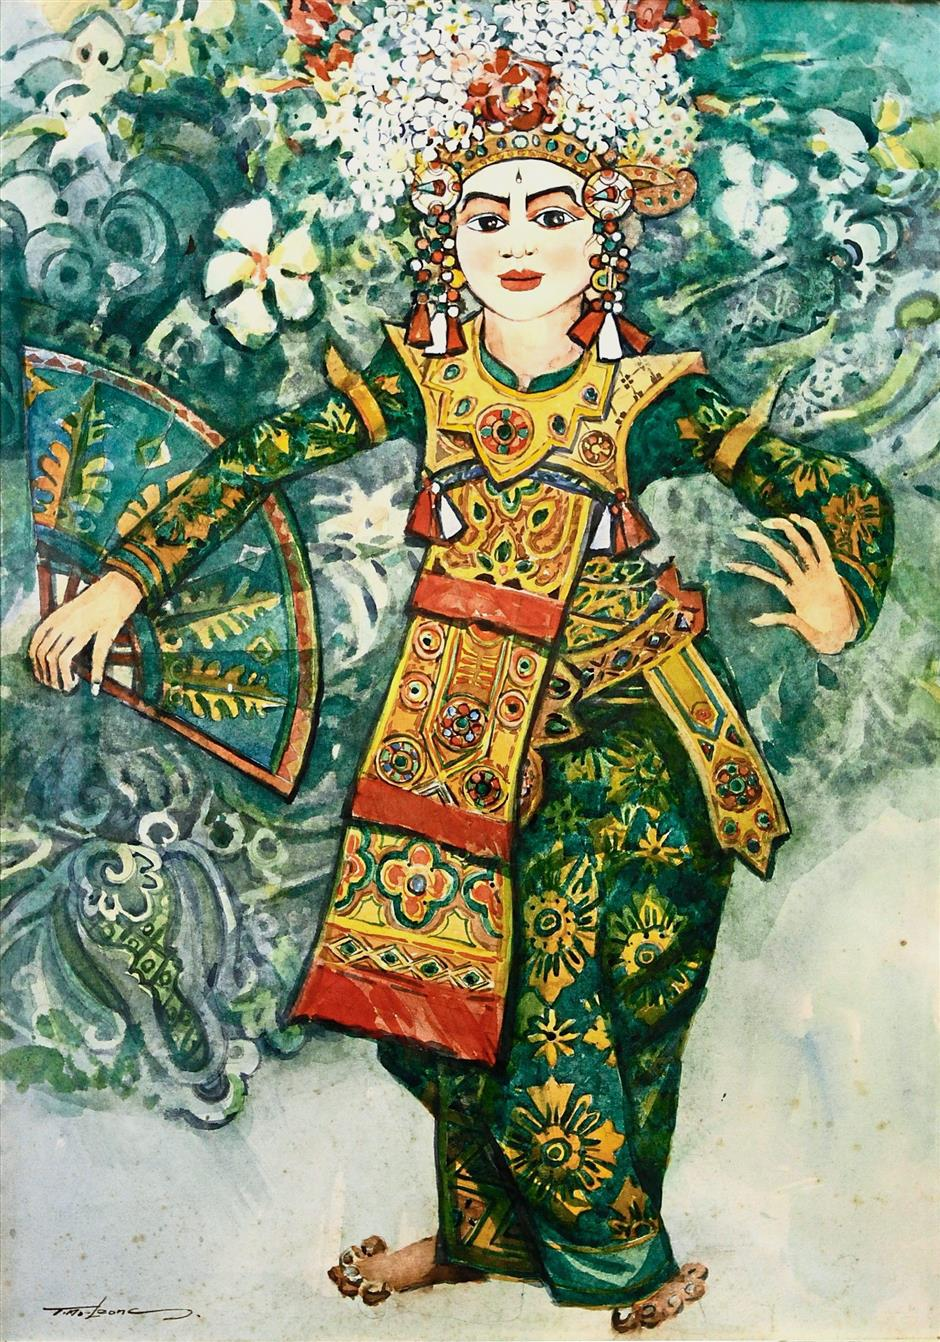 ^'Legong – The Classical' is a colourful piece by renowned Malaysian painter Datuk Tay Mo-Leong.